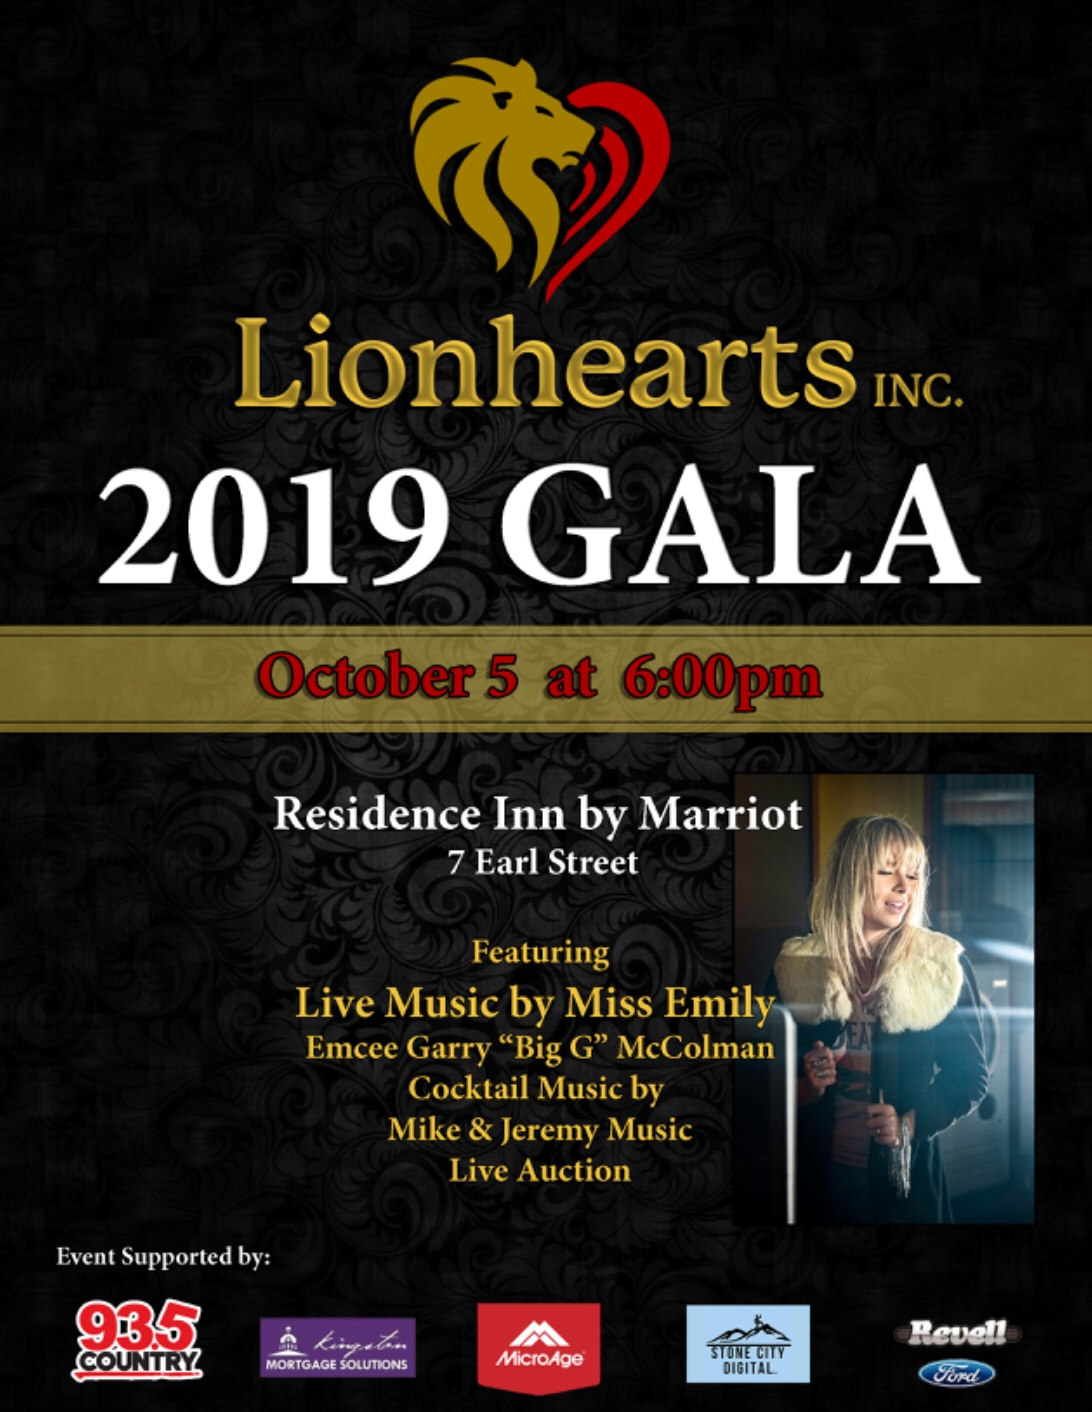 Gala to support Lionhearts Inc charity